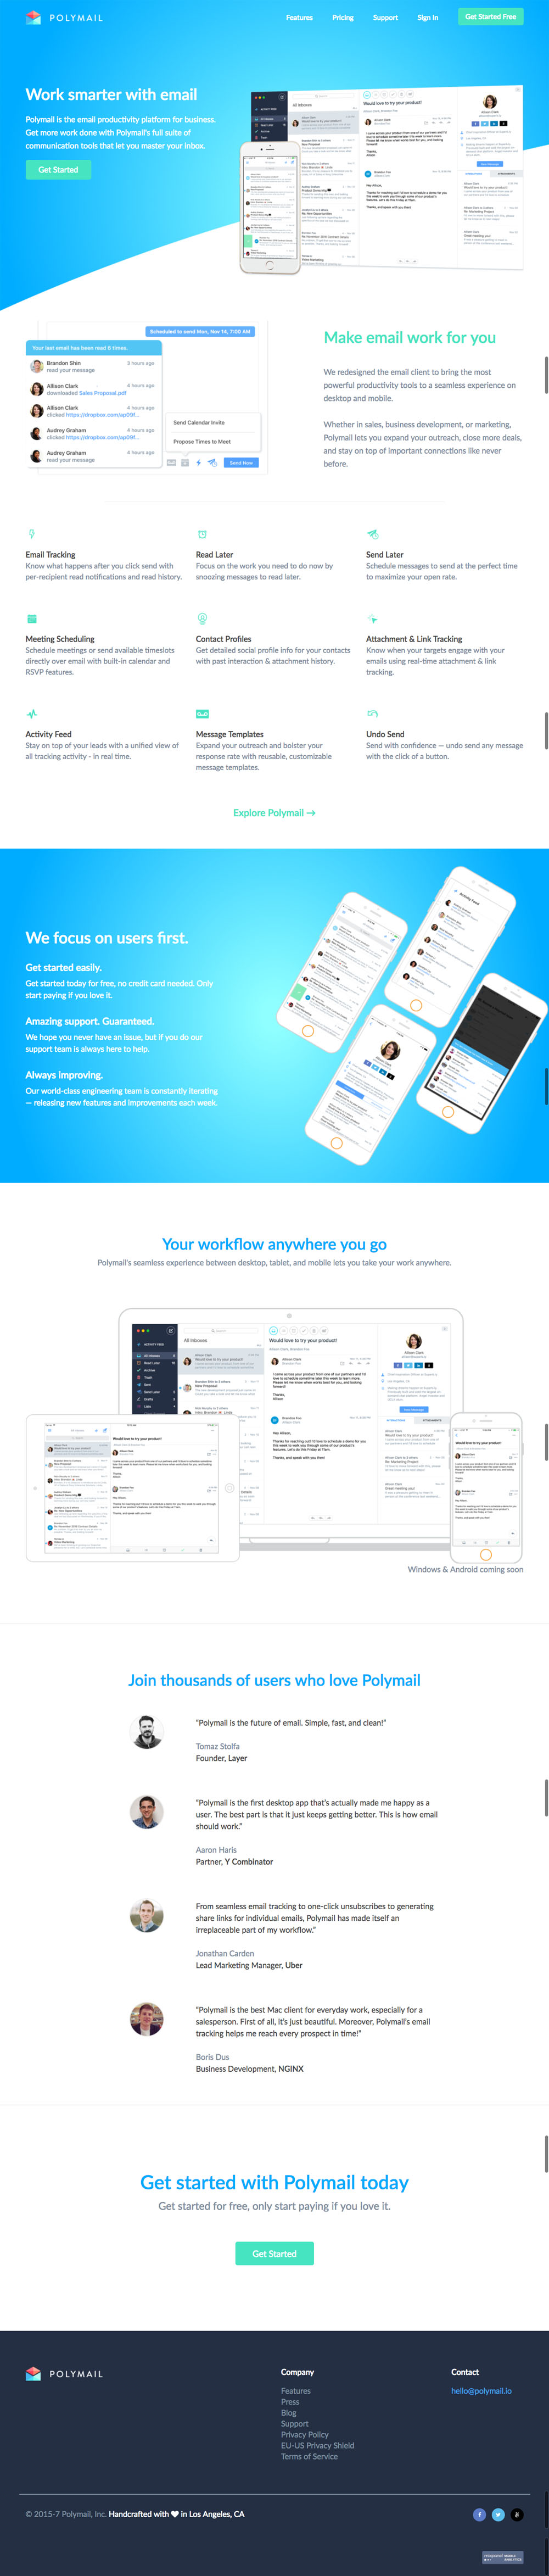 PolyMail Website Design